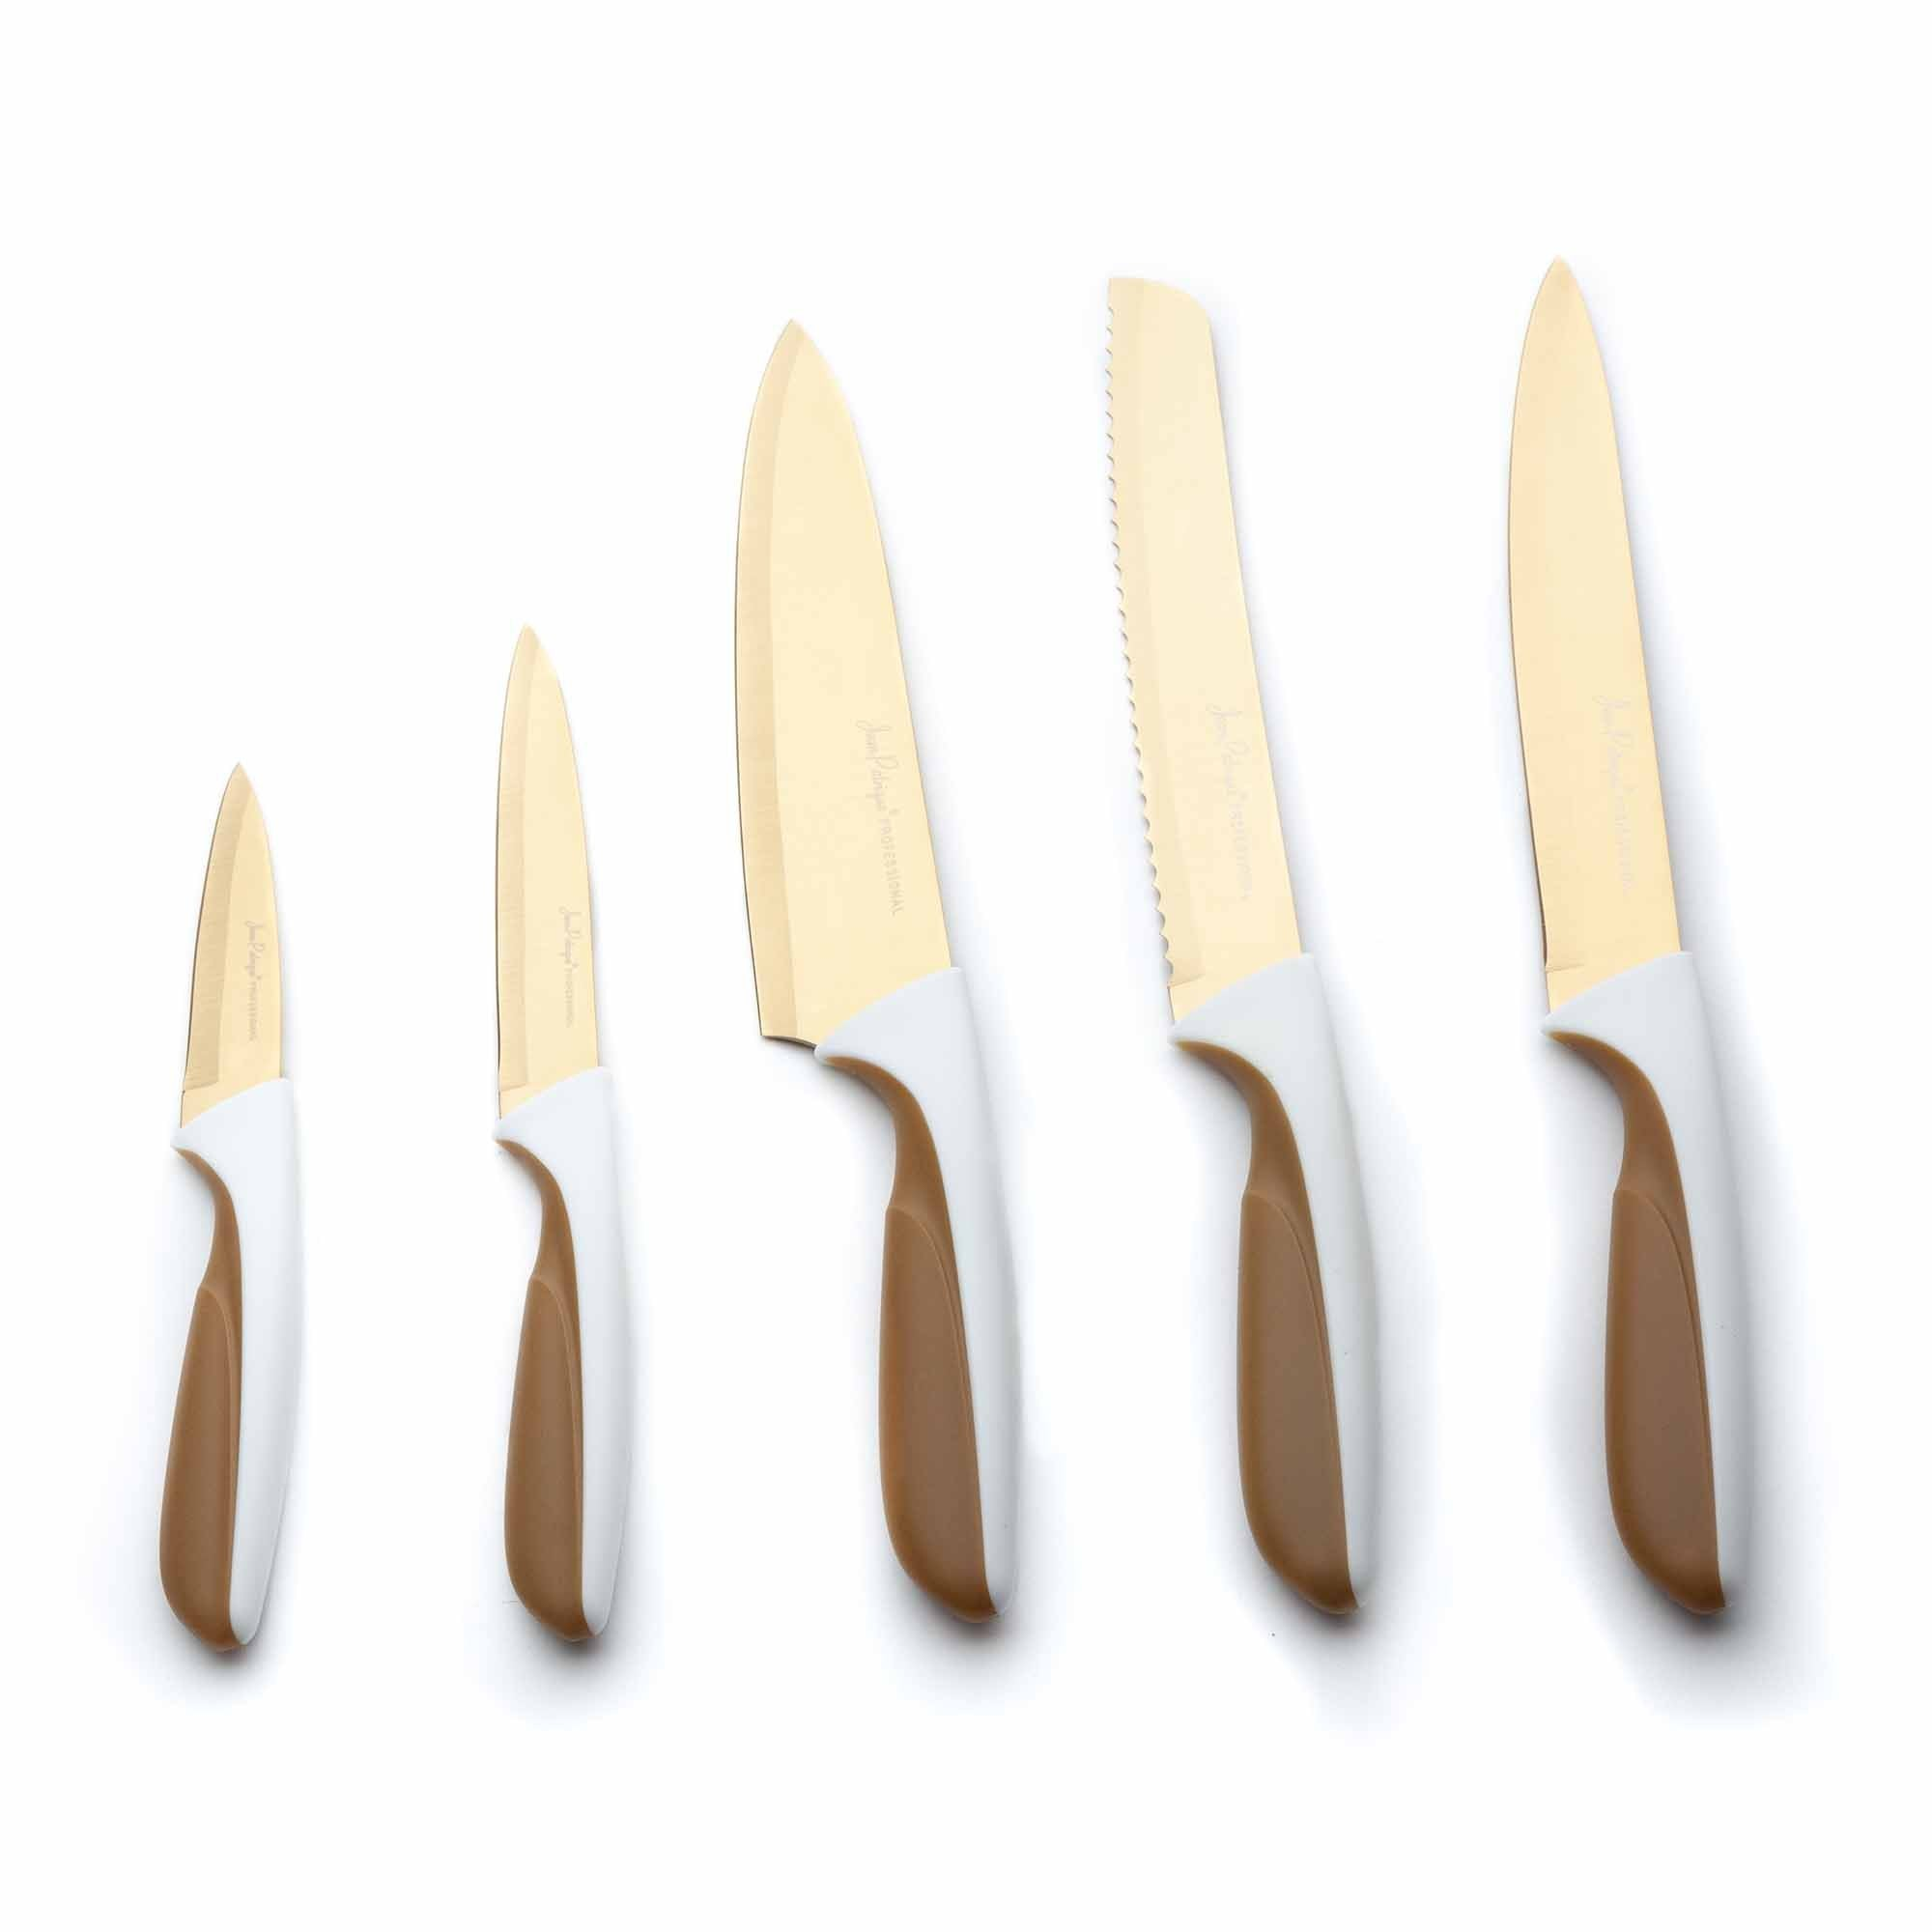 5-Piece Titanium Knife Set - White/Gold Handles